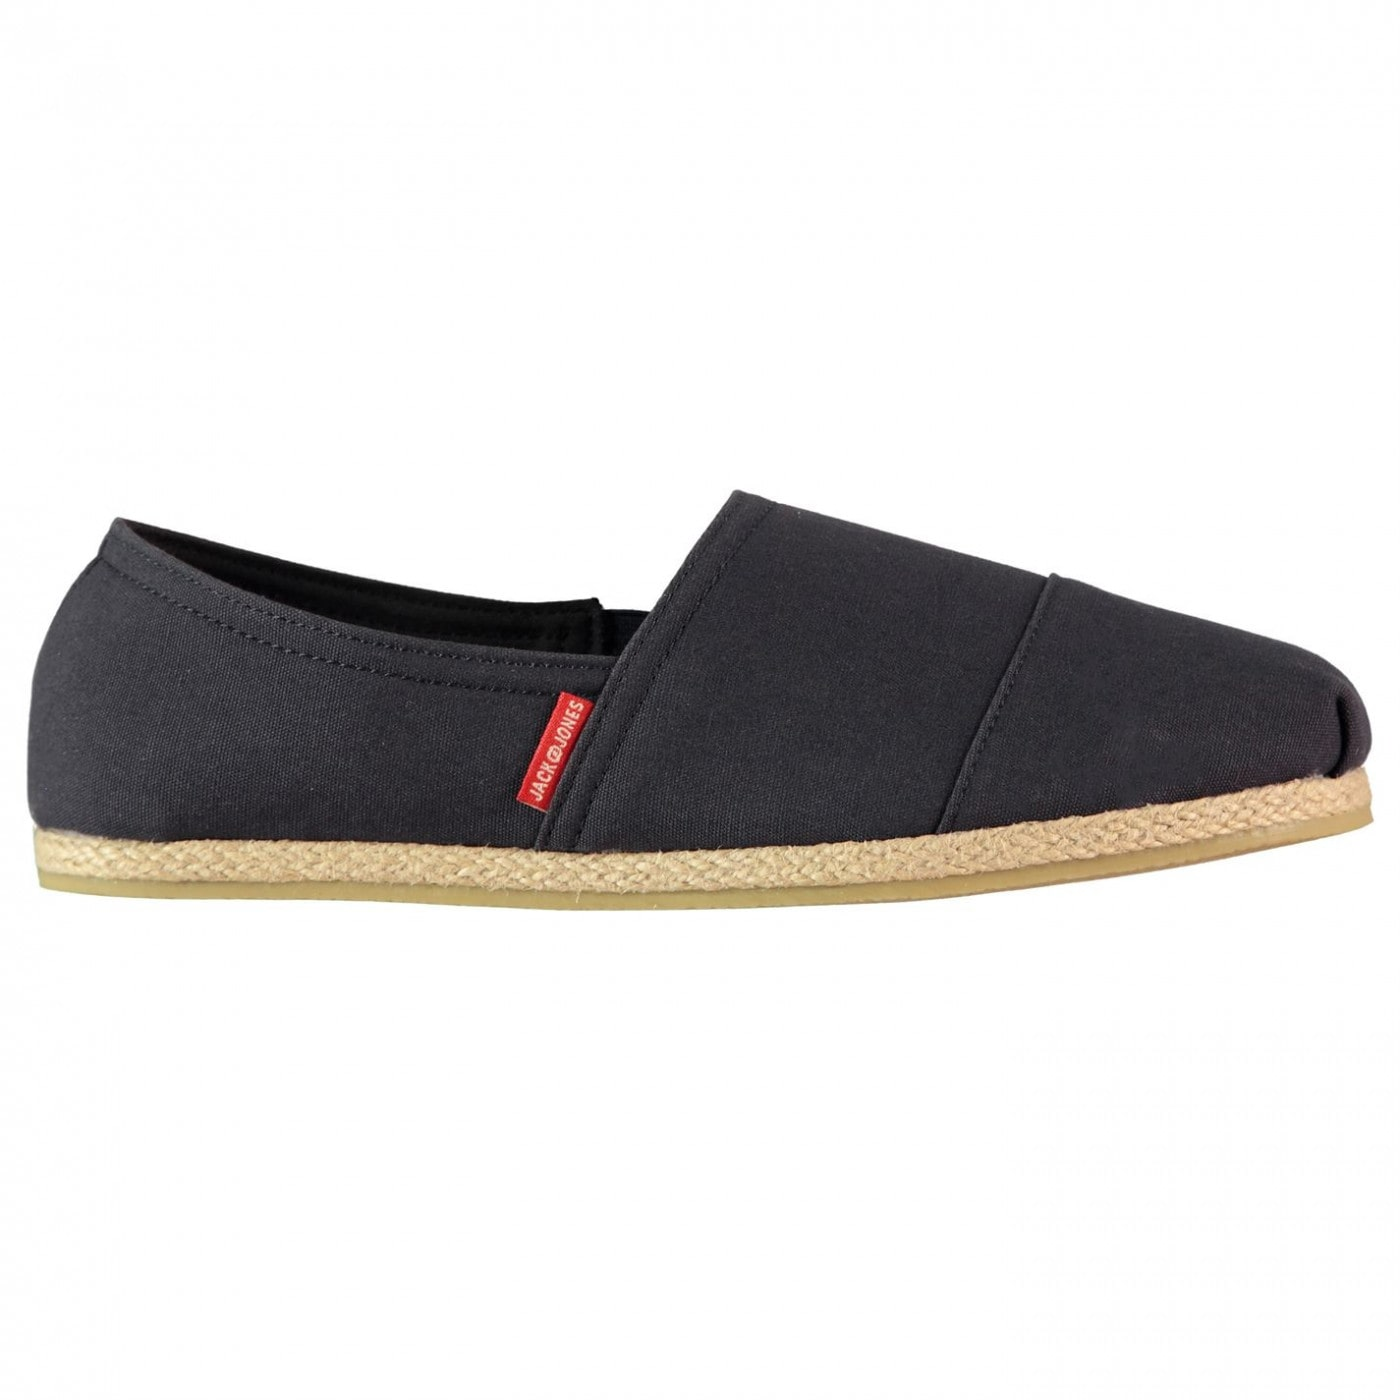 Jack and Jones Espadrille Canvas Shoes